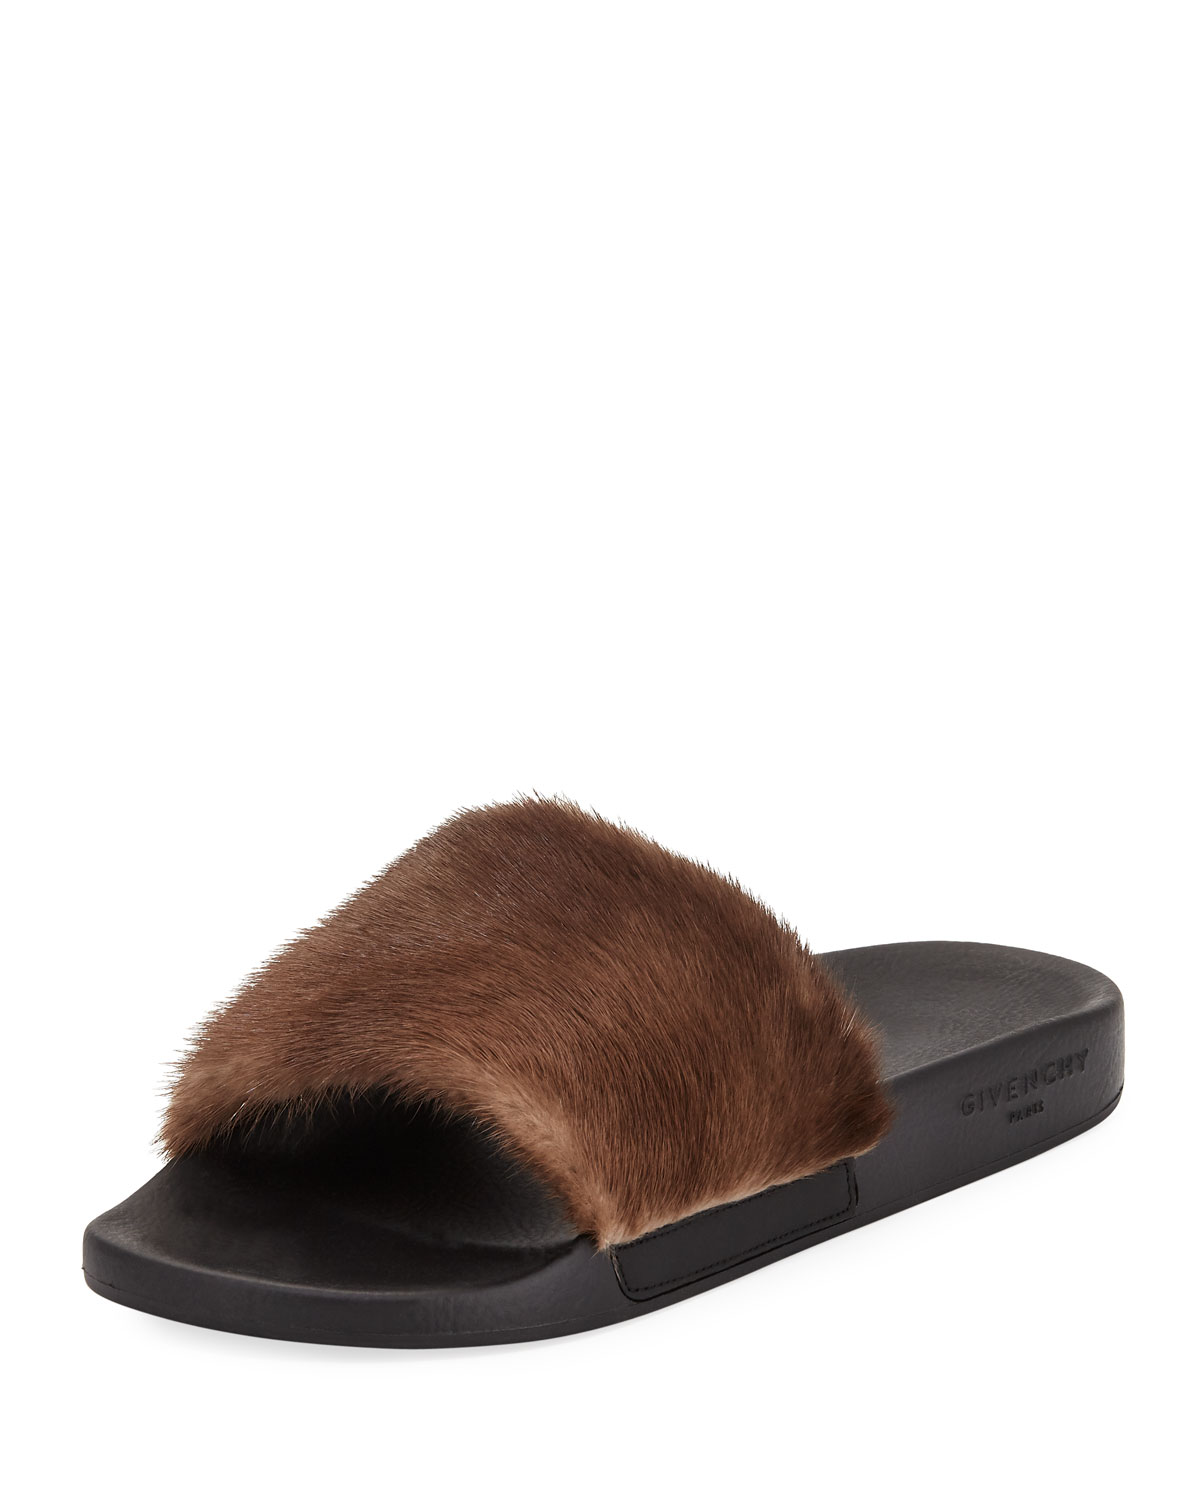 f78fbf1d493e Givenchy Men s Mink Fur Slide Sandal